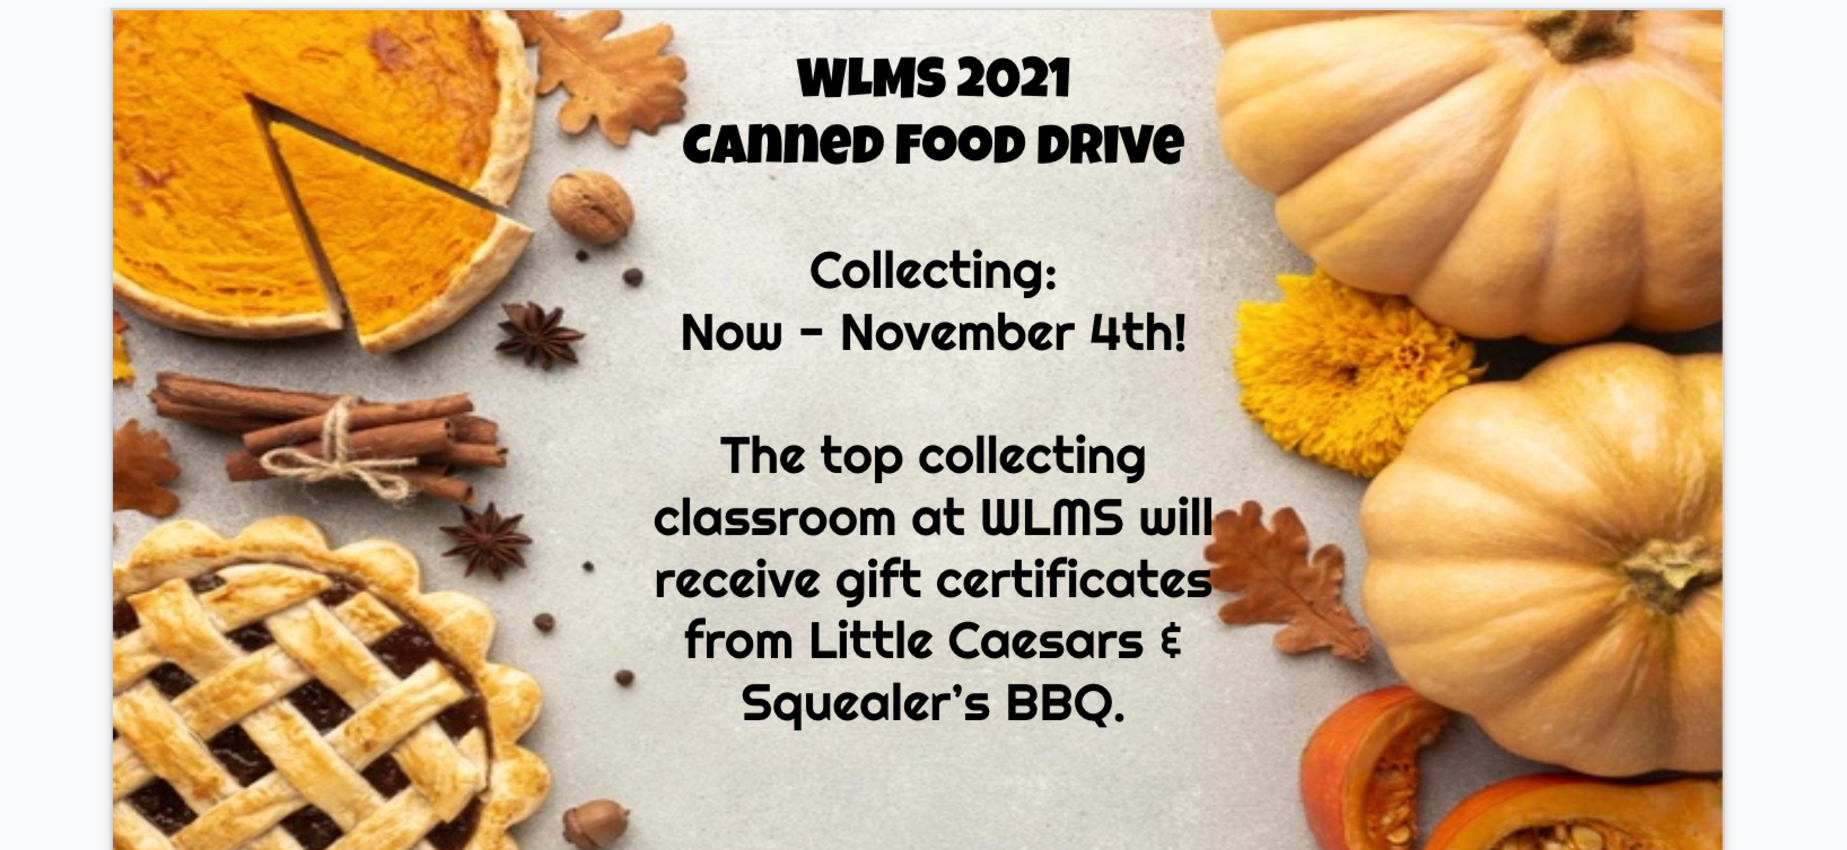 Canned food drive information